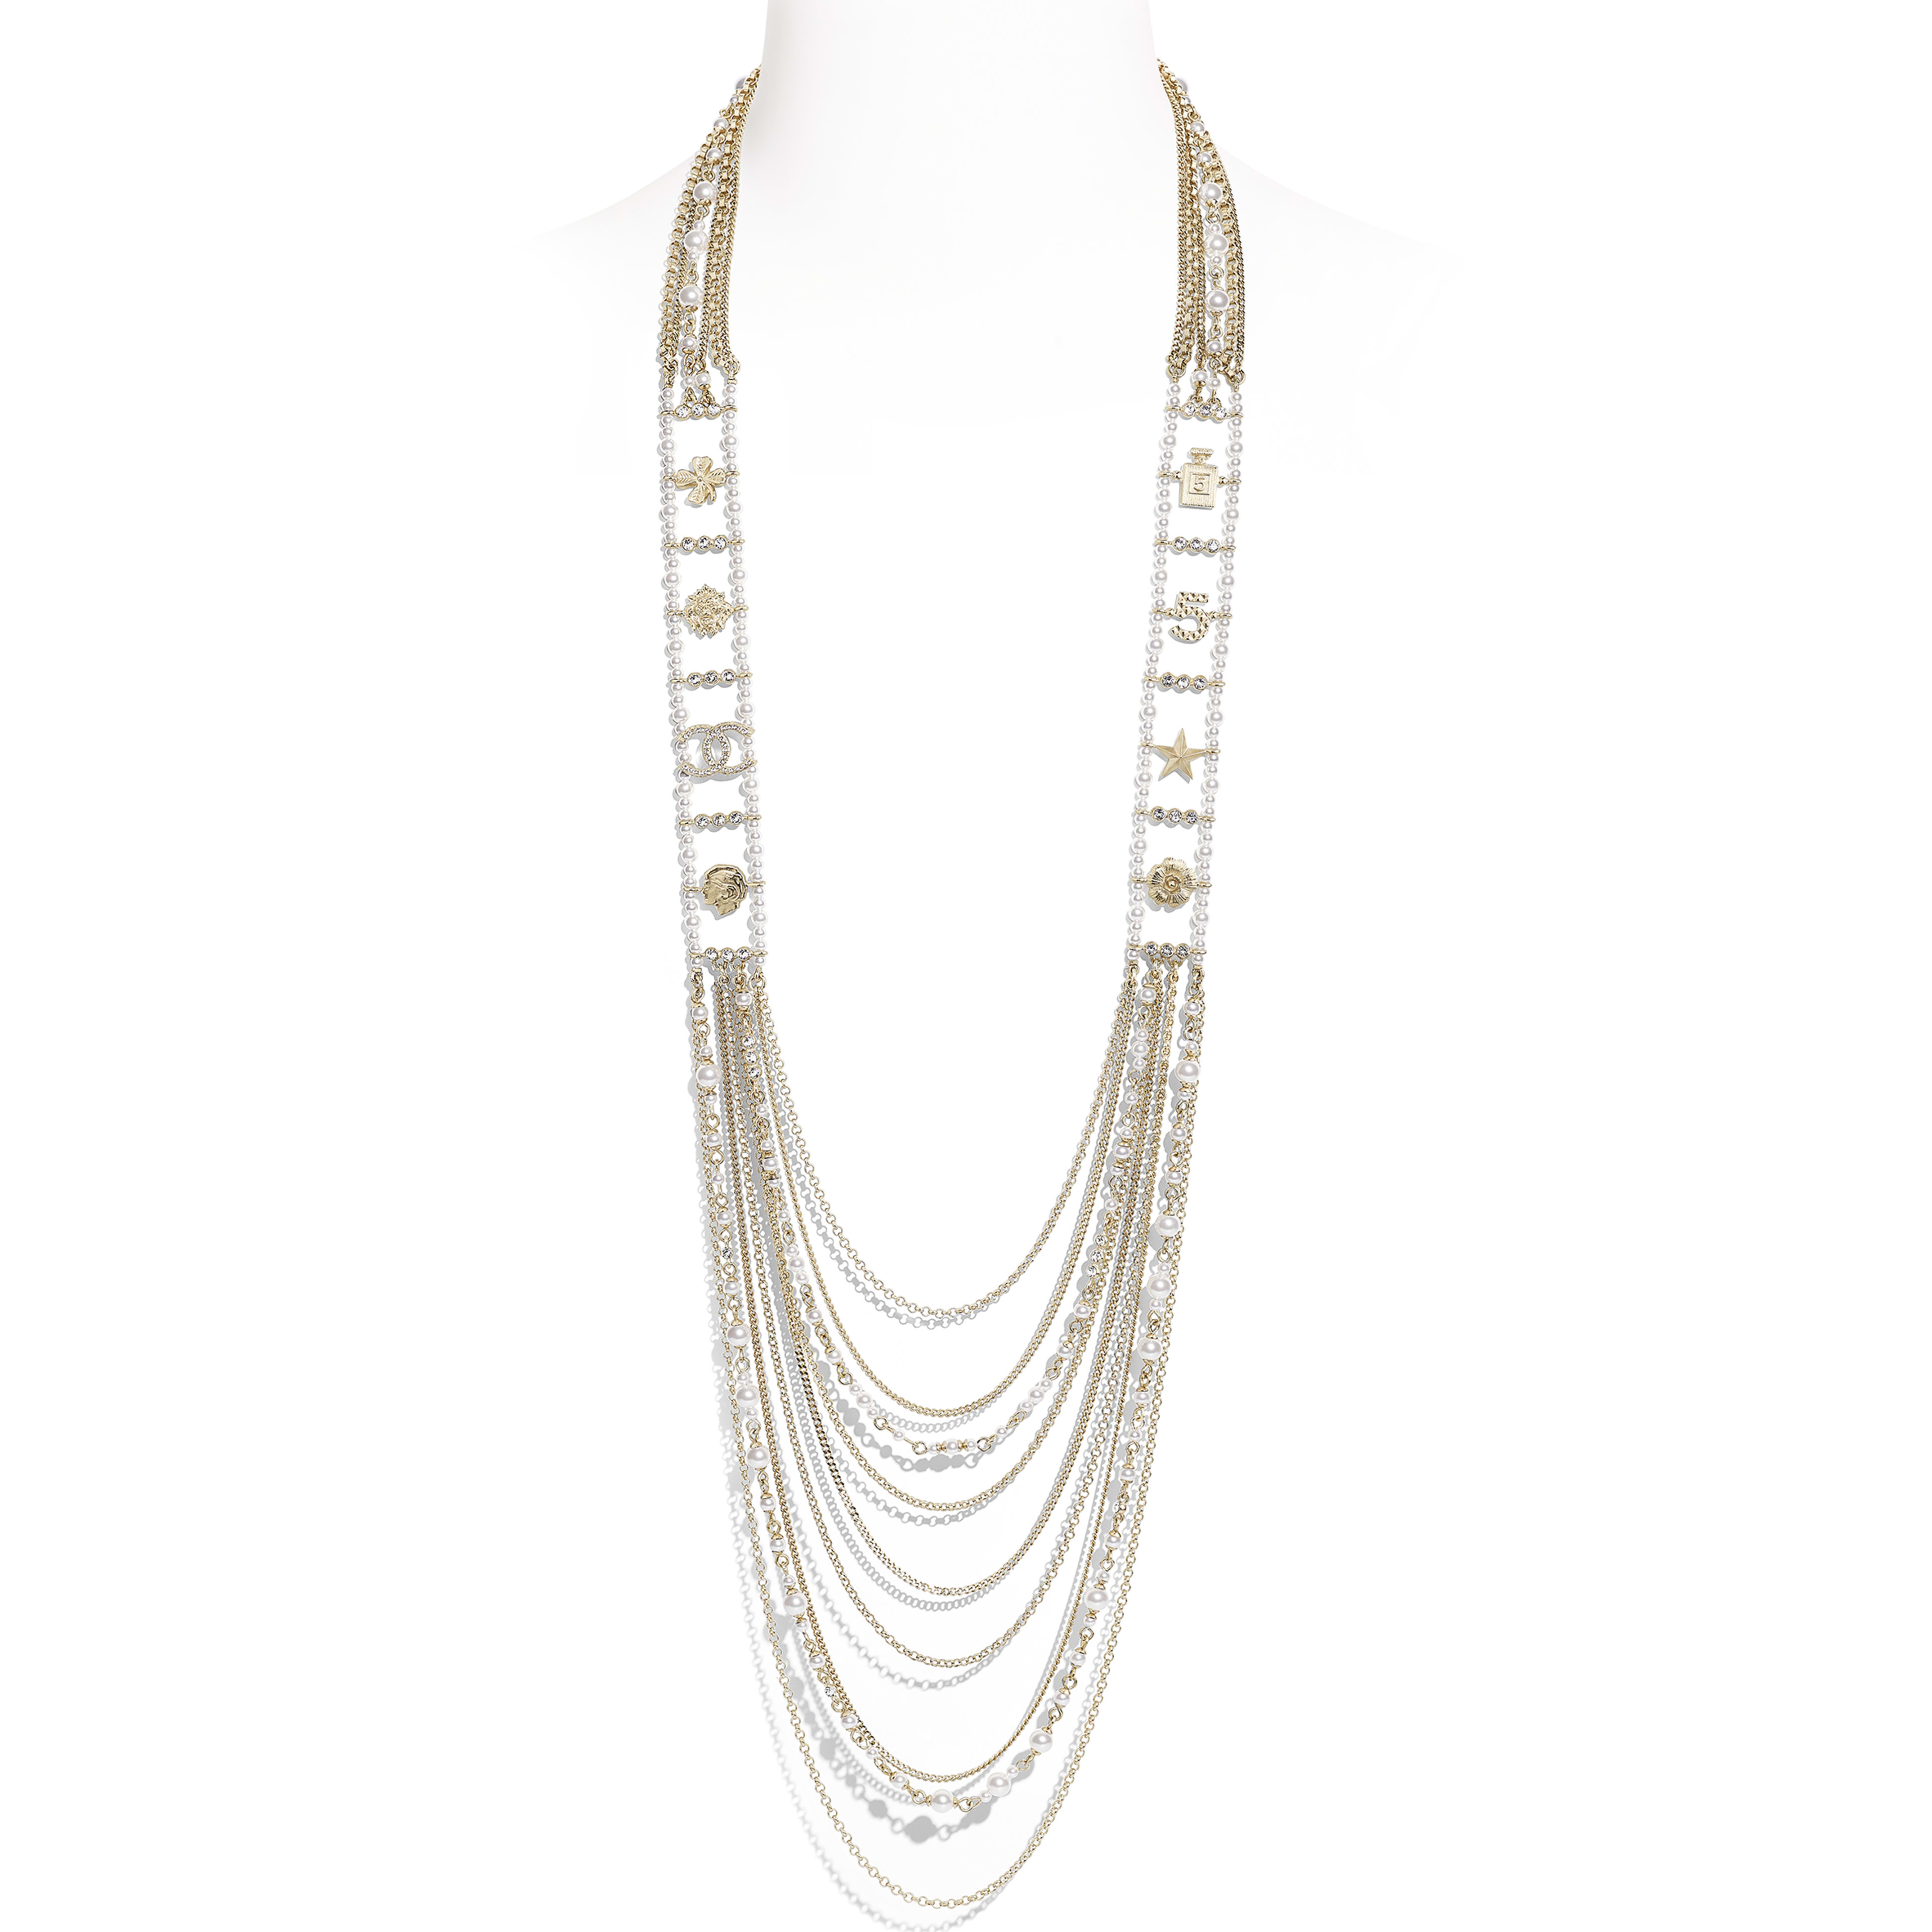 Long Necklace - Gold, Pearly White & Crystal - Metal, Glass Pearls & Diamantés - Default view - see full sized version